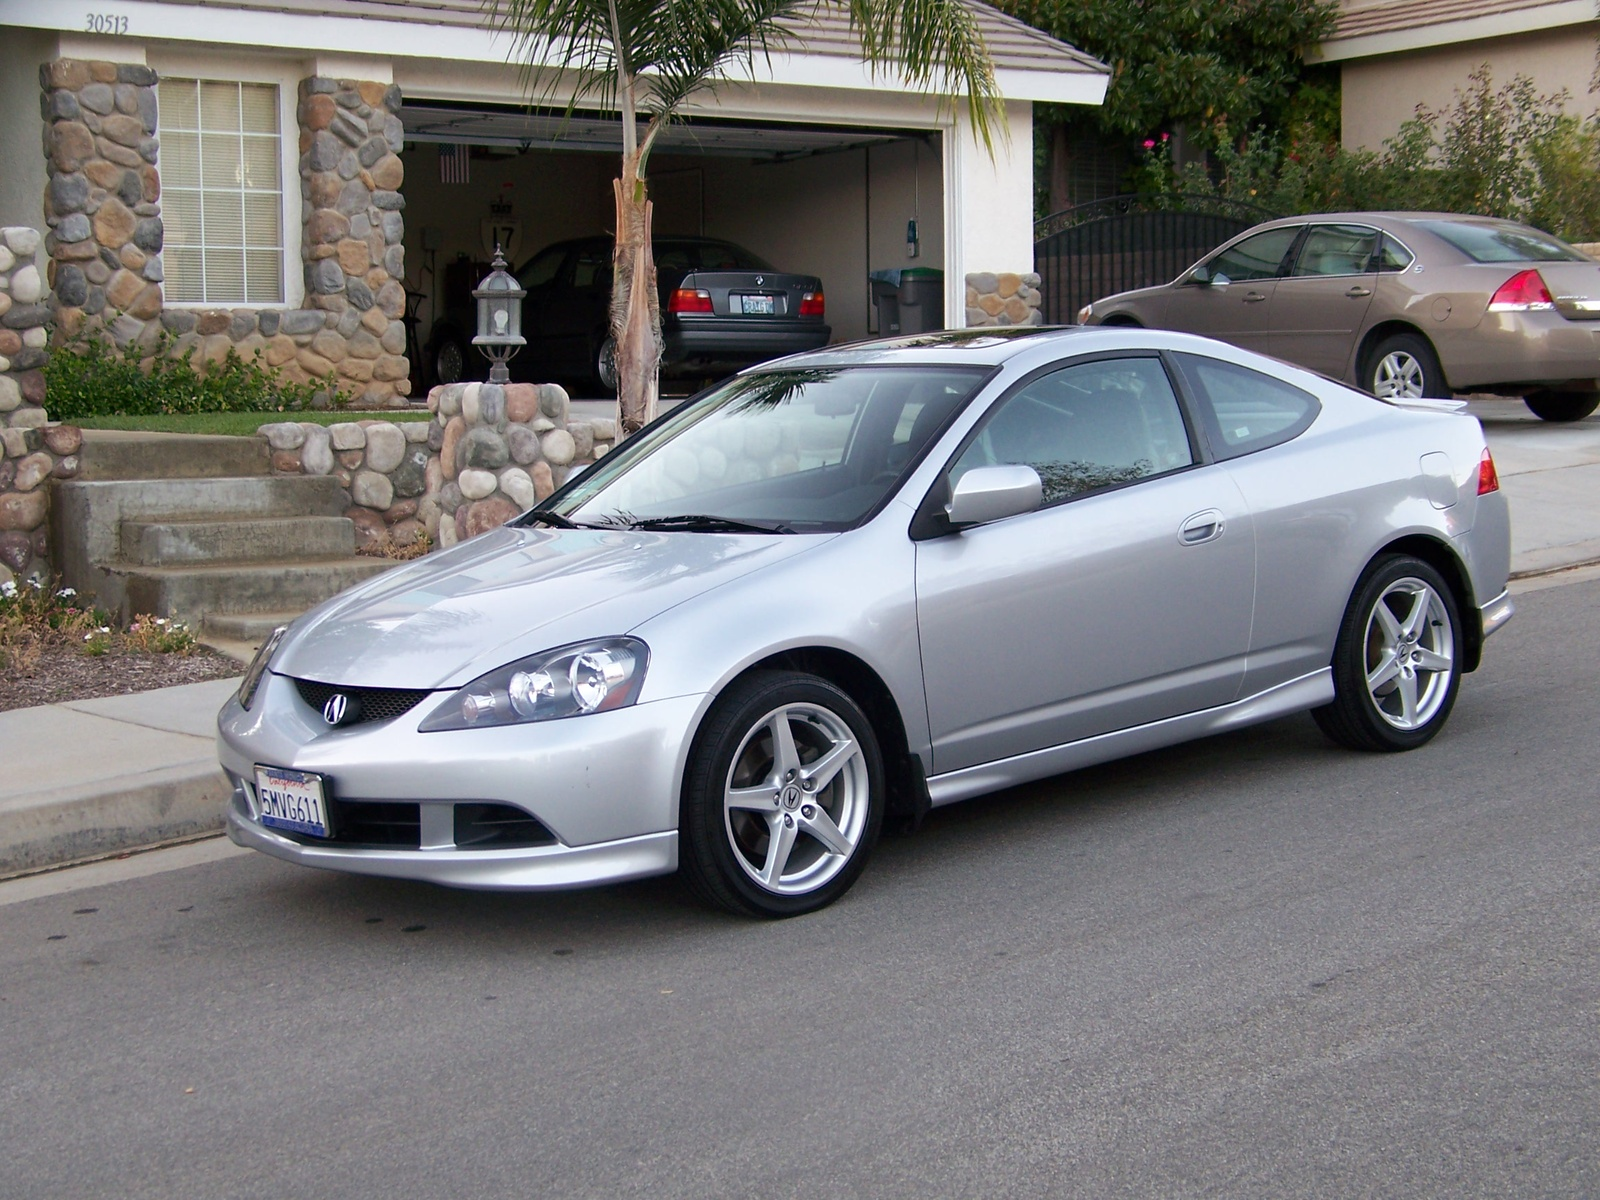 2005 Acura RSX Type-S photo - 7